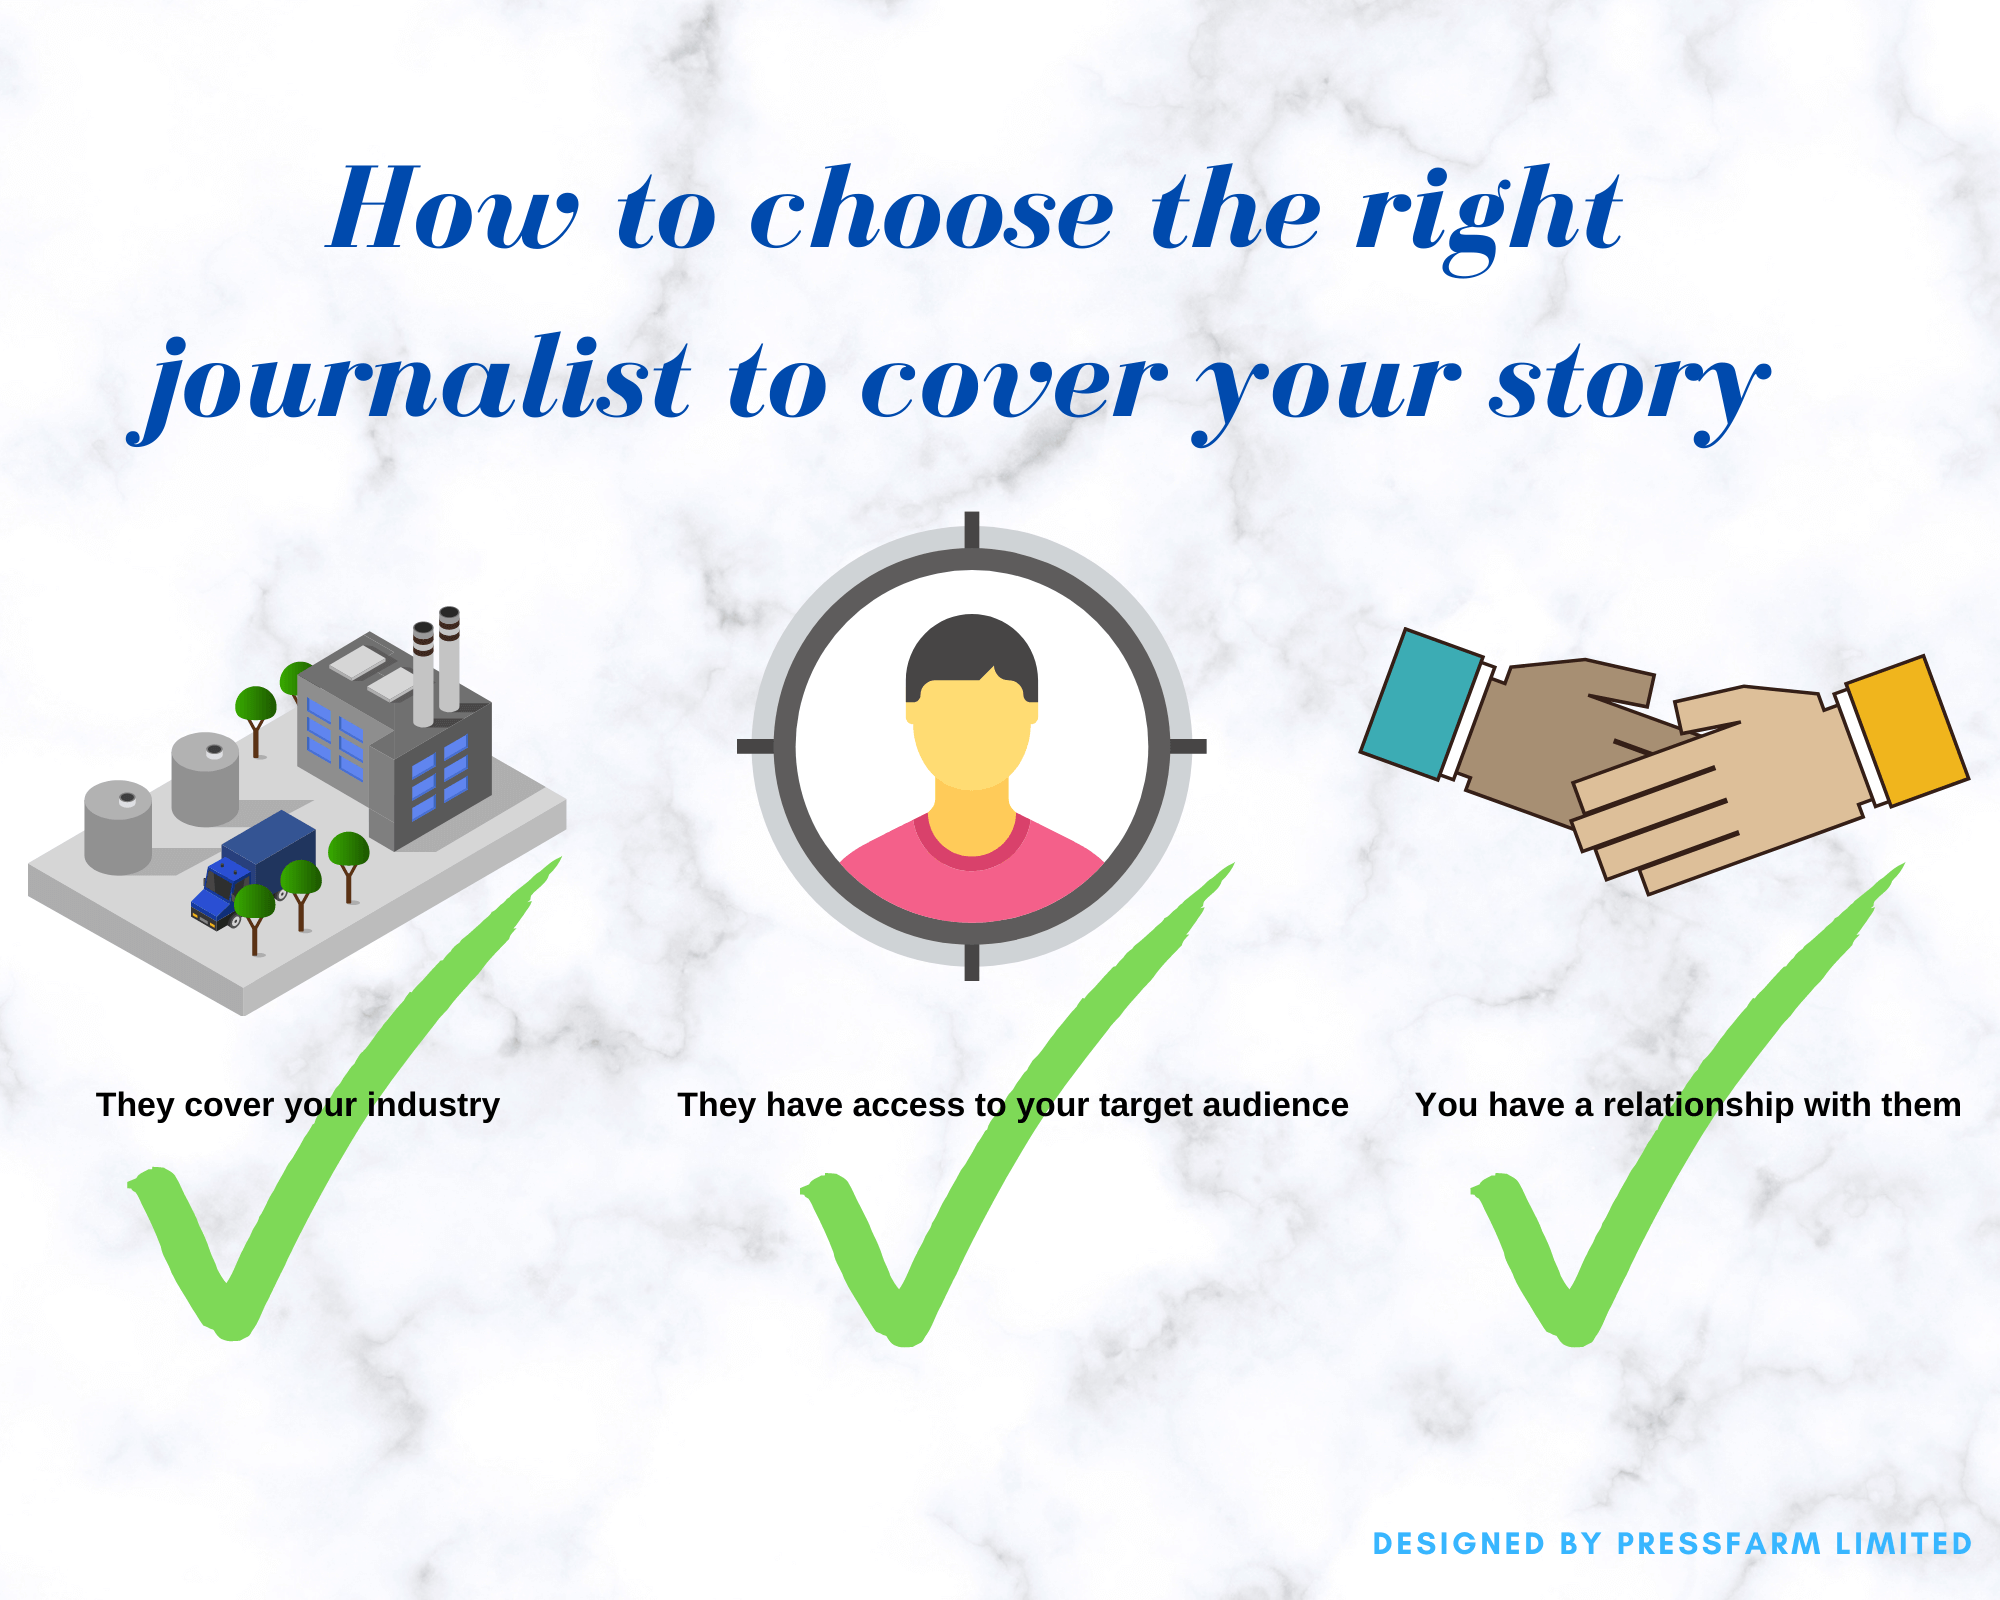 How to choose the right media journalist to cover your story